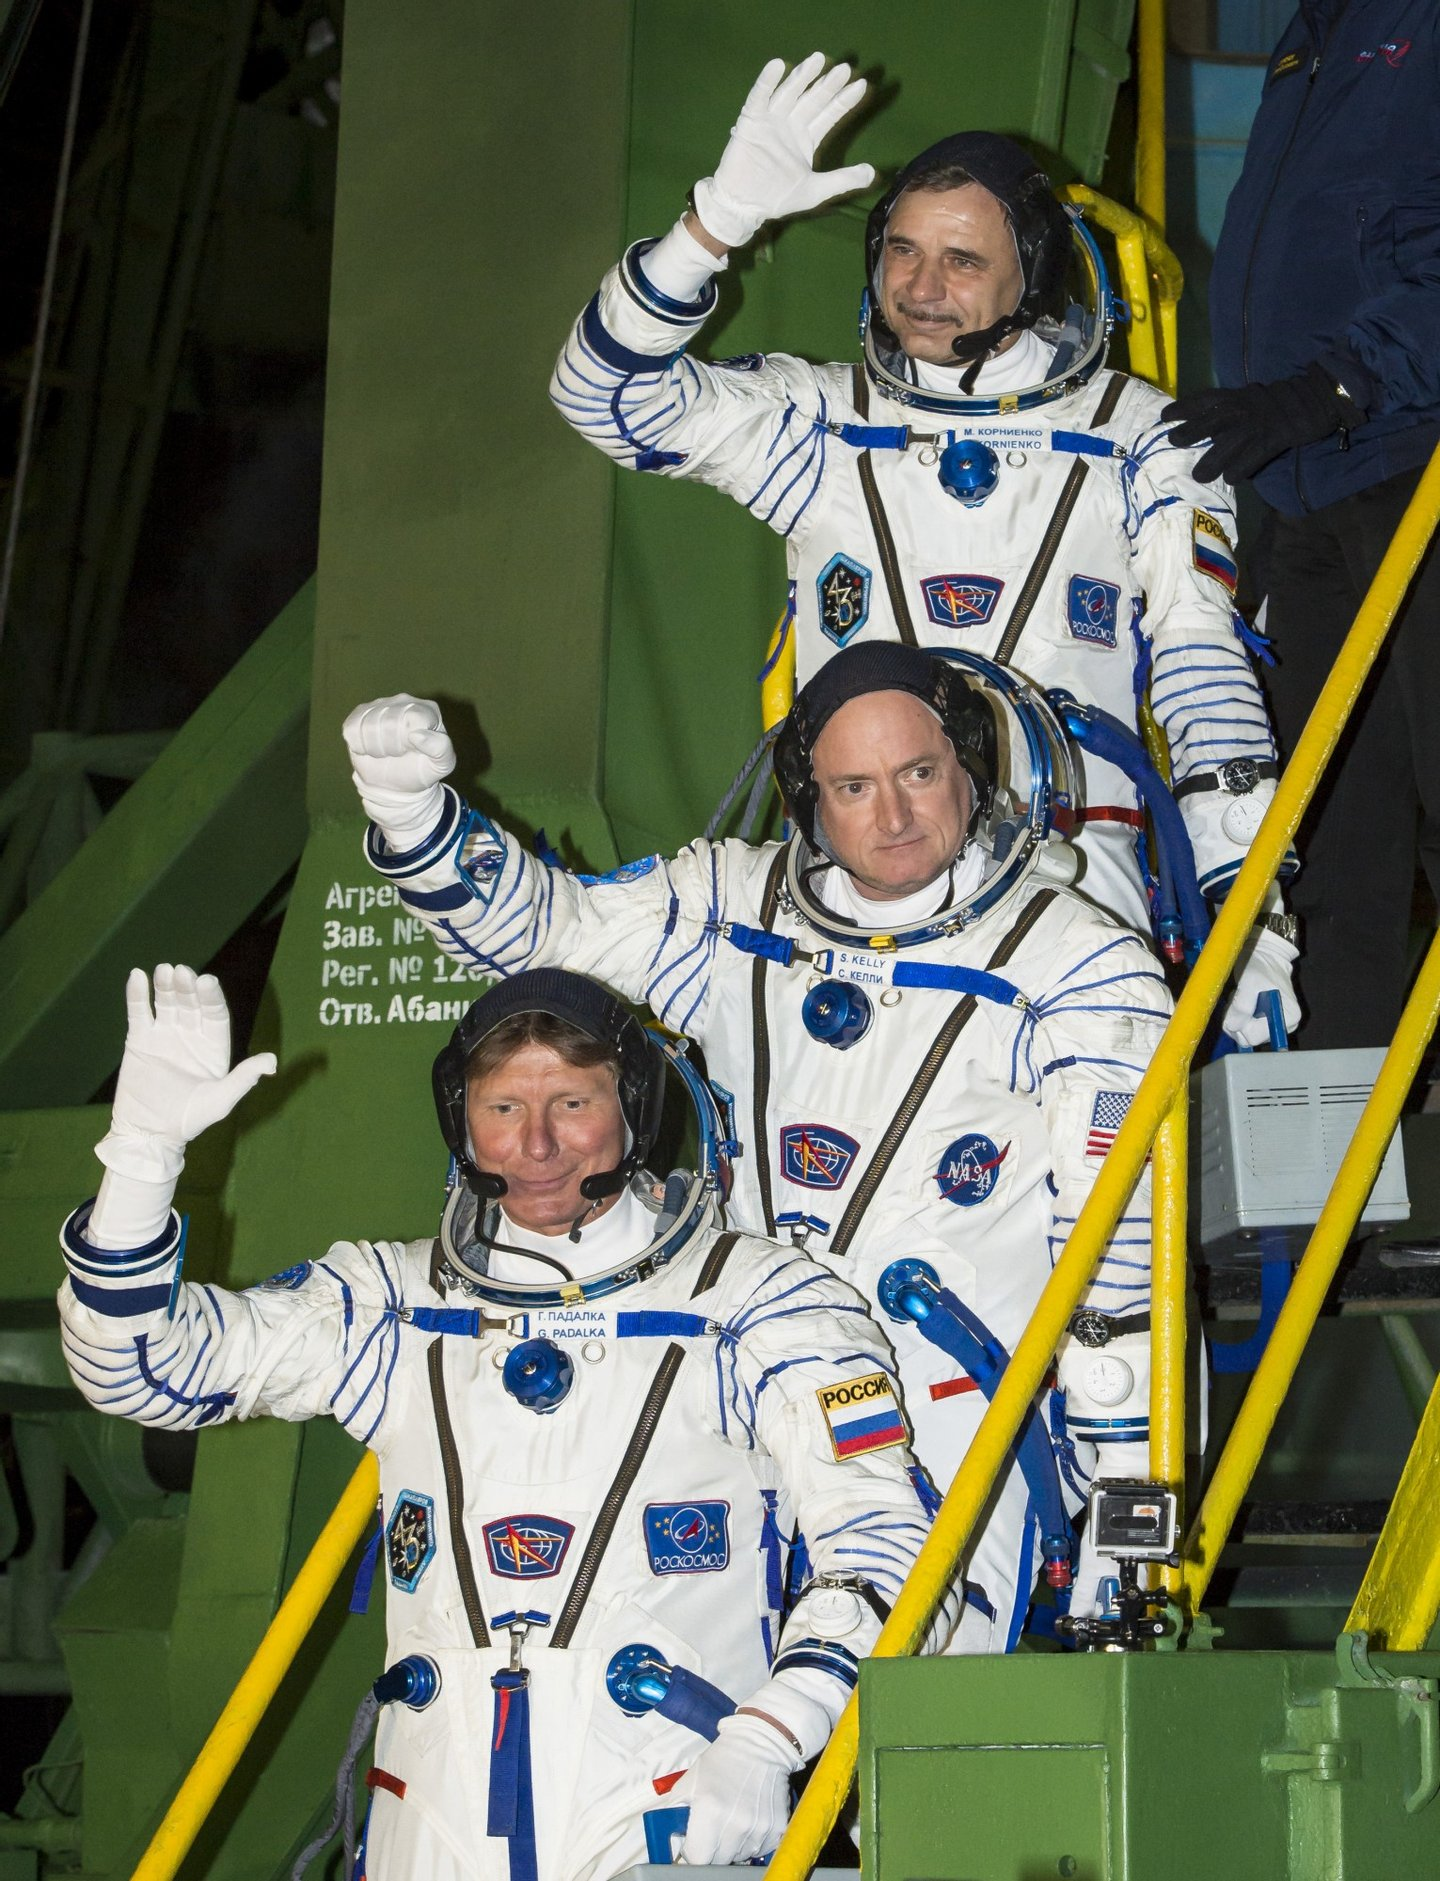 Expedition 43 Russian Cosmonaut Mikhail Kornienko of the Russian Federal Space Agency (Roscosmos), top, NASA Astronaut Scott Kelly, center, and Russian Cosmonaut Gennady Padalka of Roscosmos wave farewell as they board the Soyuz TMA-16M spacecraft ahead of their launch to the International Space Station, Friday, March 27, 2015 in Baikonor, Kazakhstan. As the one-year crew, Kelly and Kornienko will return to Earth on Soyuz TMA-18M in March 2016. Photo Credit (NASA/Bill Ingalls)